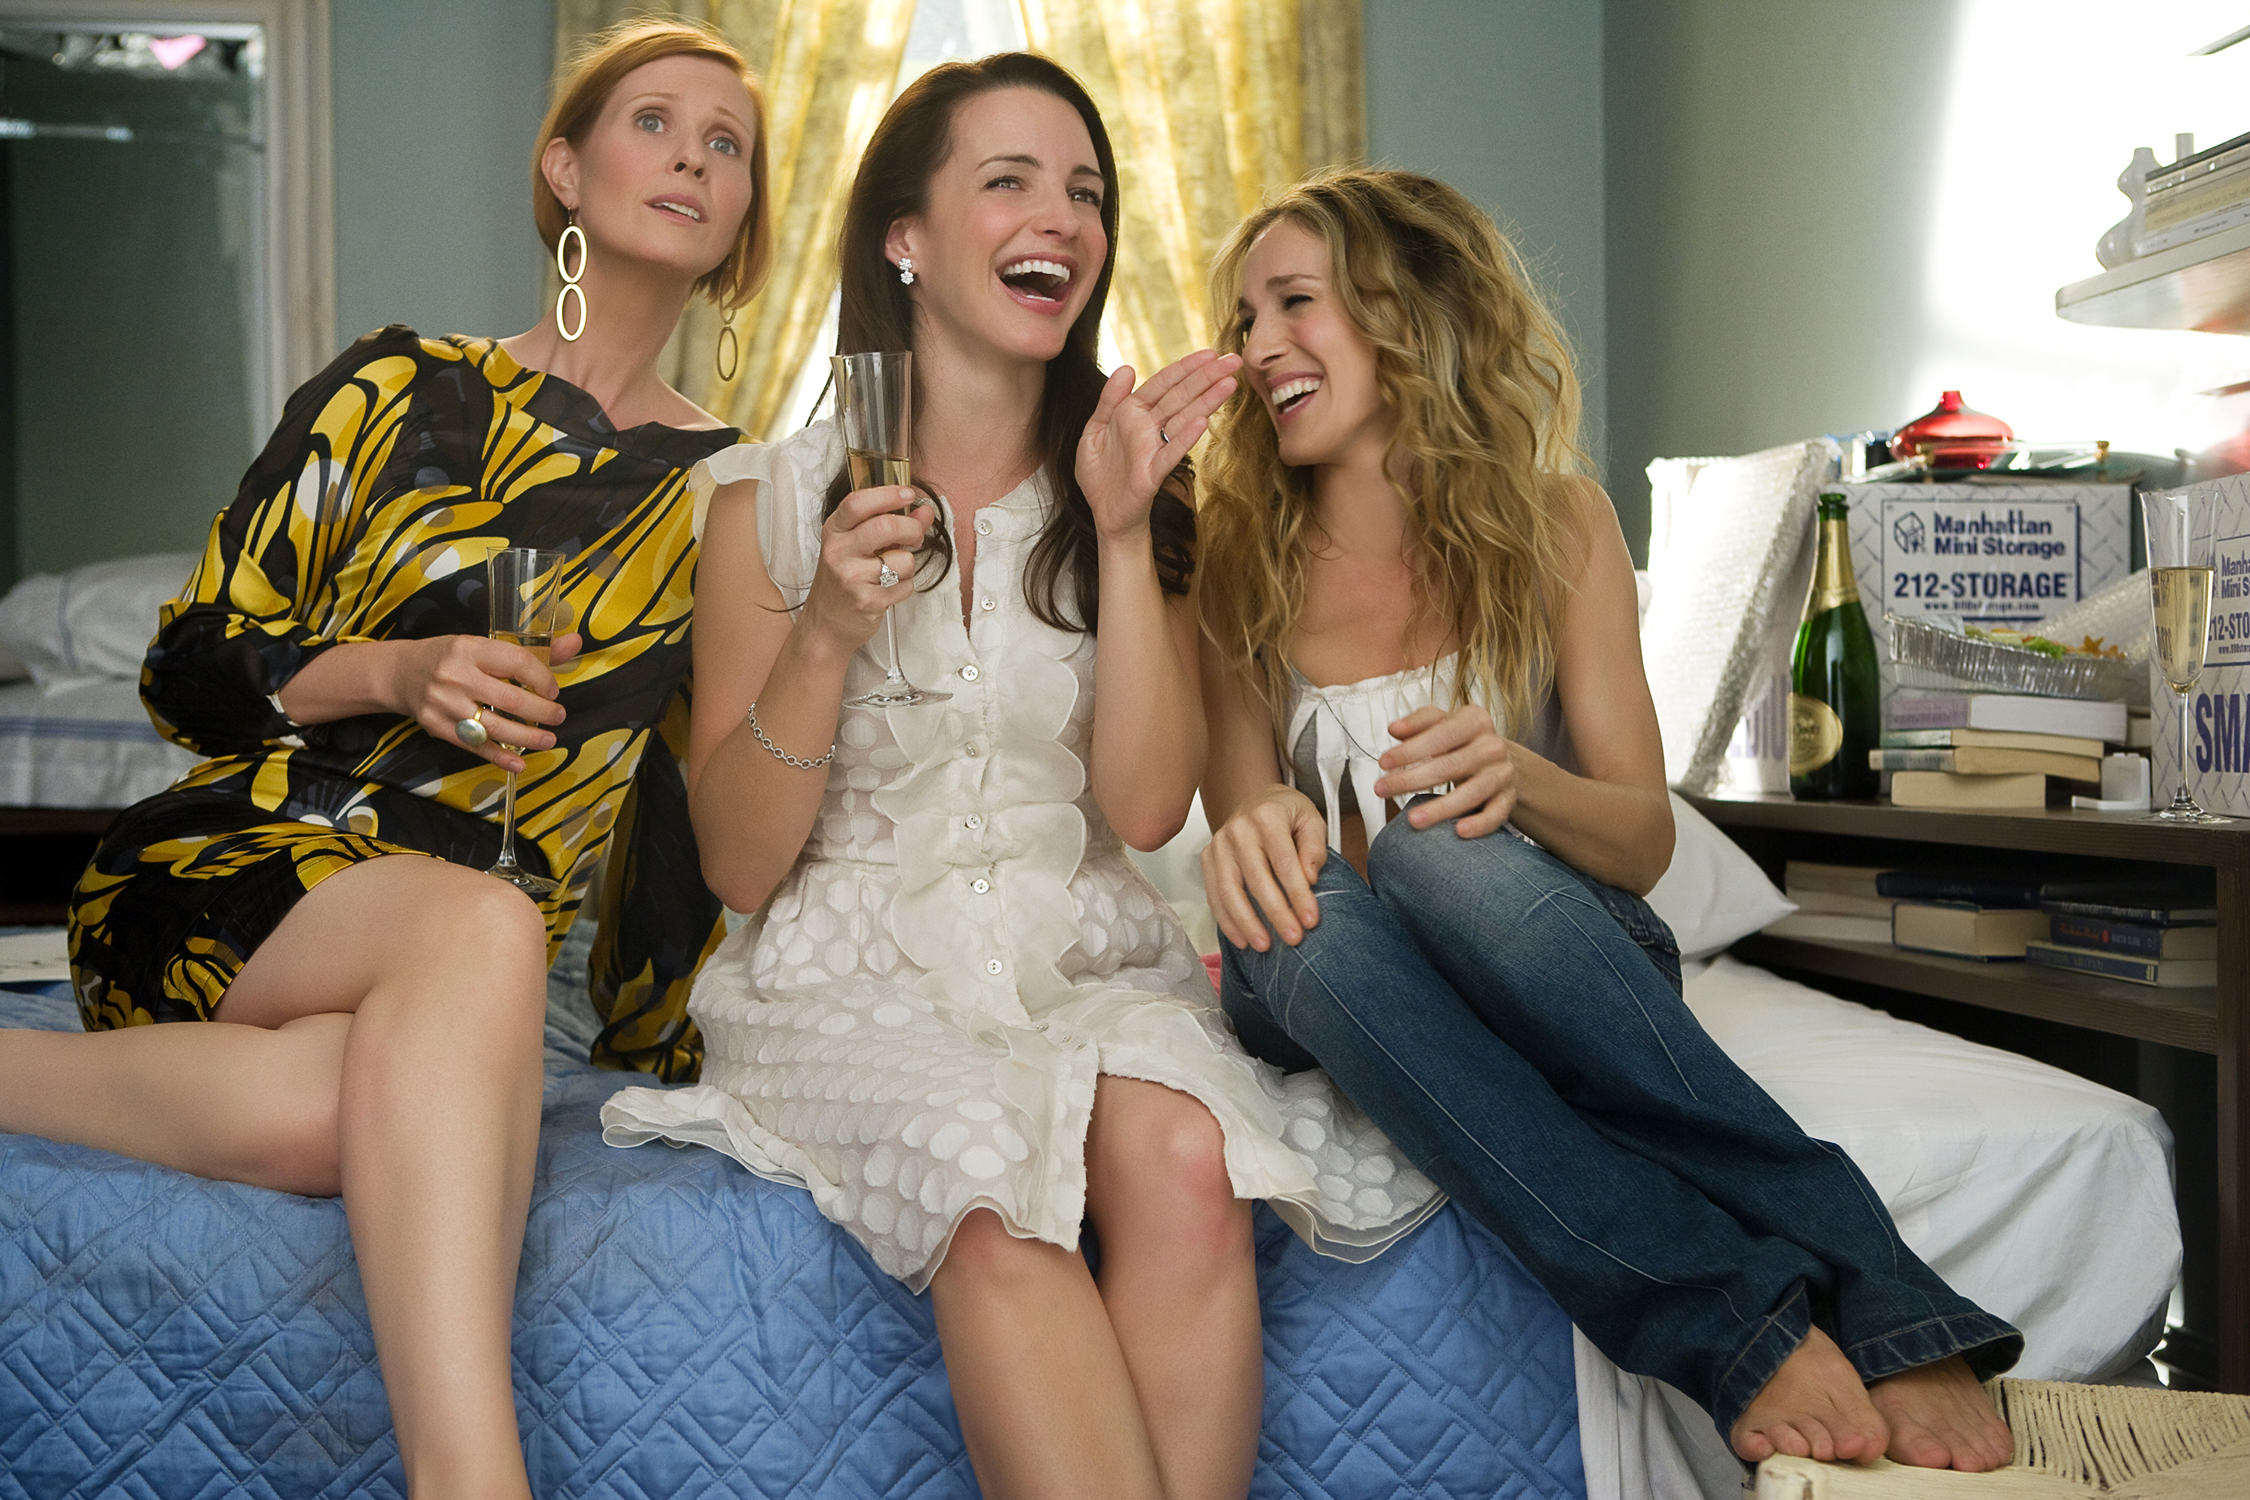 """NEW LINE CINEMA  5/25/08 The gang is back for fresh laughs. Miranda, Charlotte and Carrie (from left, Cynthia Nixon, Kristin Davis and Sarah Jessica Parker) star in the much-anticipated movie version of """"Sex and the City."""" """"It felt like we had been apart about a week,"""" said Davis. EXXSATCm - SEX AND THE CITY - Cynthia Nixon (left) stars as """"Miranda Hobbes"""", Kristin Davis (center) stars as """"Charlotte York-Goldenblatt"""" and Sarah Jessica Parker stars as """"Carrie Bradshaw"""" in New Line Cinema's upcoming release of SEX AND THE CITY: THE MOVIE. Photo Credit: Craig Blankenhorn/New Line Cinema. Maximum width 67.5 picas at 200 dpi. 3/31//08"""